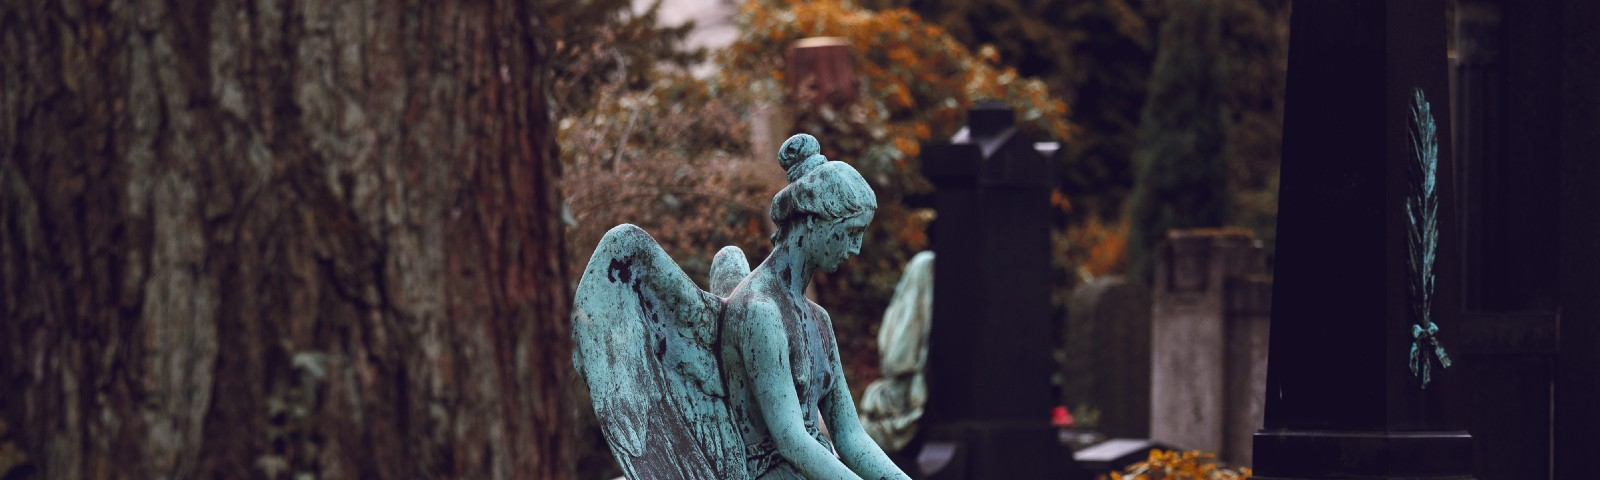 Statue of an angel sits on a tombstone in a cemetery—head bowed down, hands in lap.